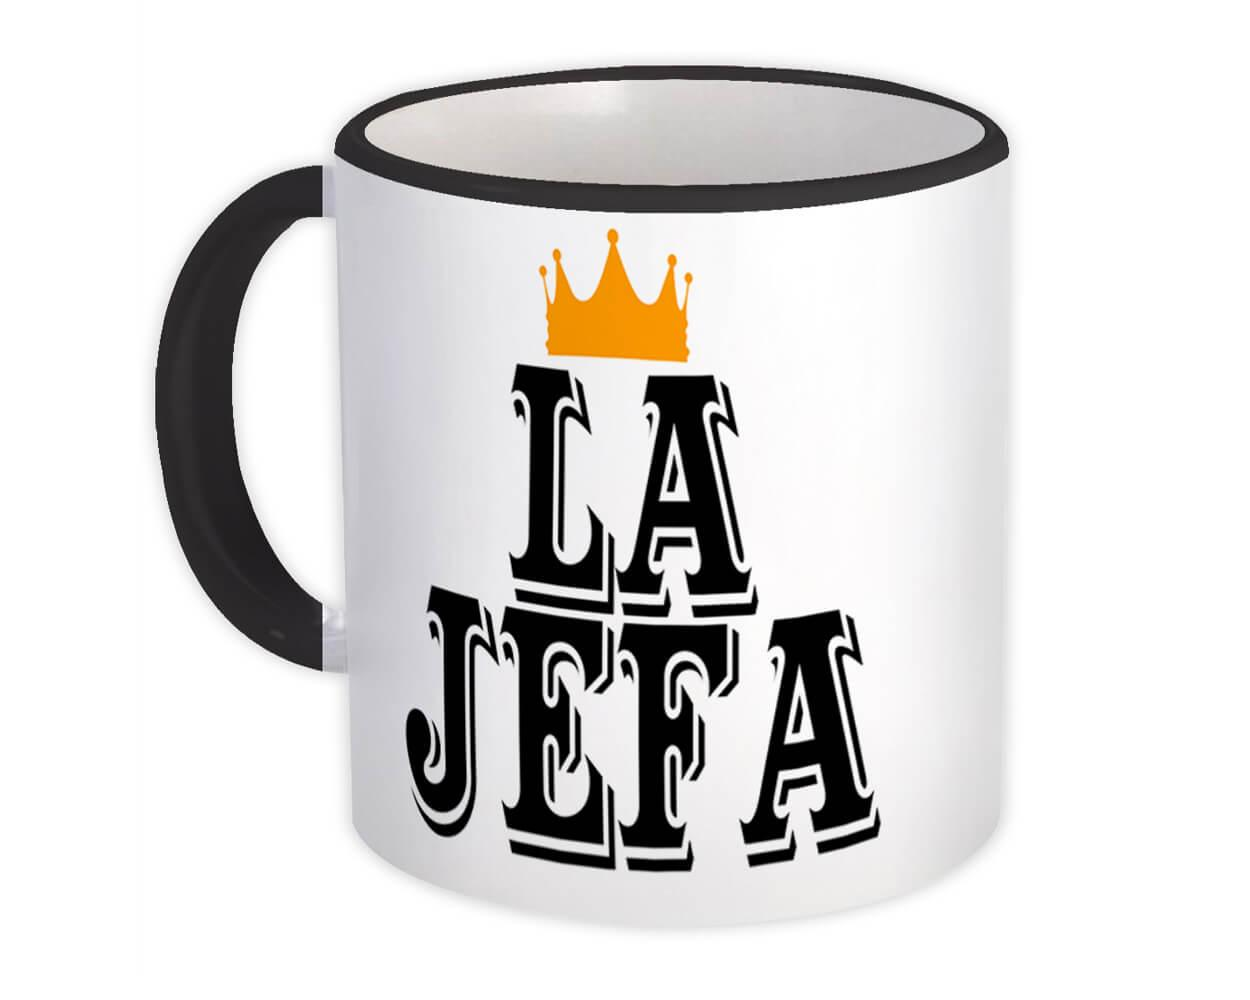 La Jefa : Gift Mug Boss Mom Mother Women Woman Christmas Office